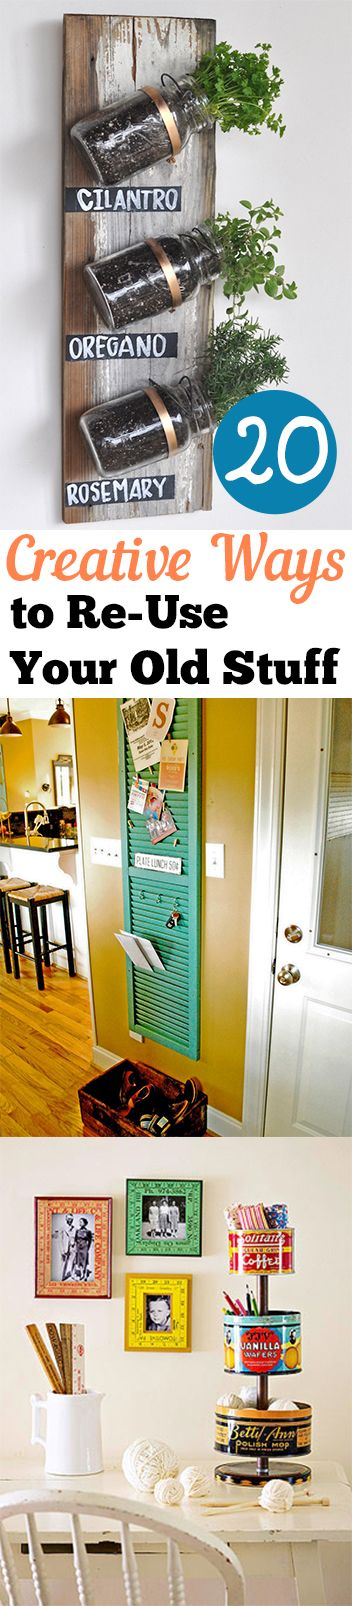 20 Creative Ways to Re-Use Your Old Stuff